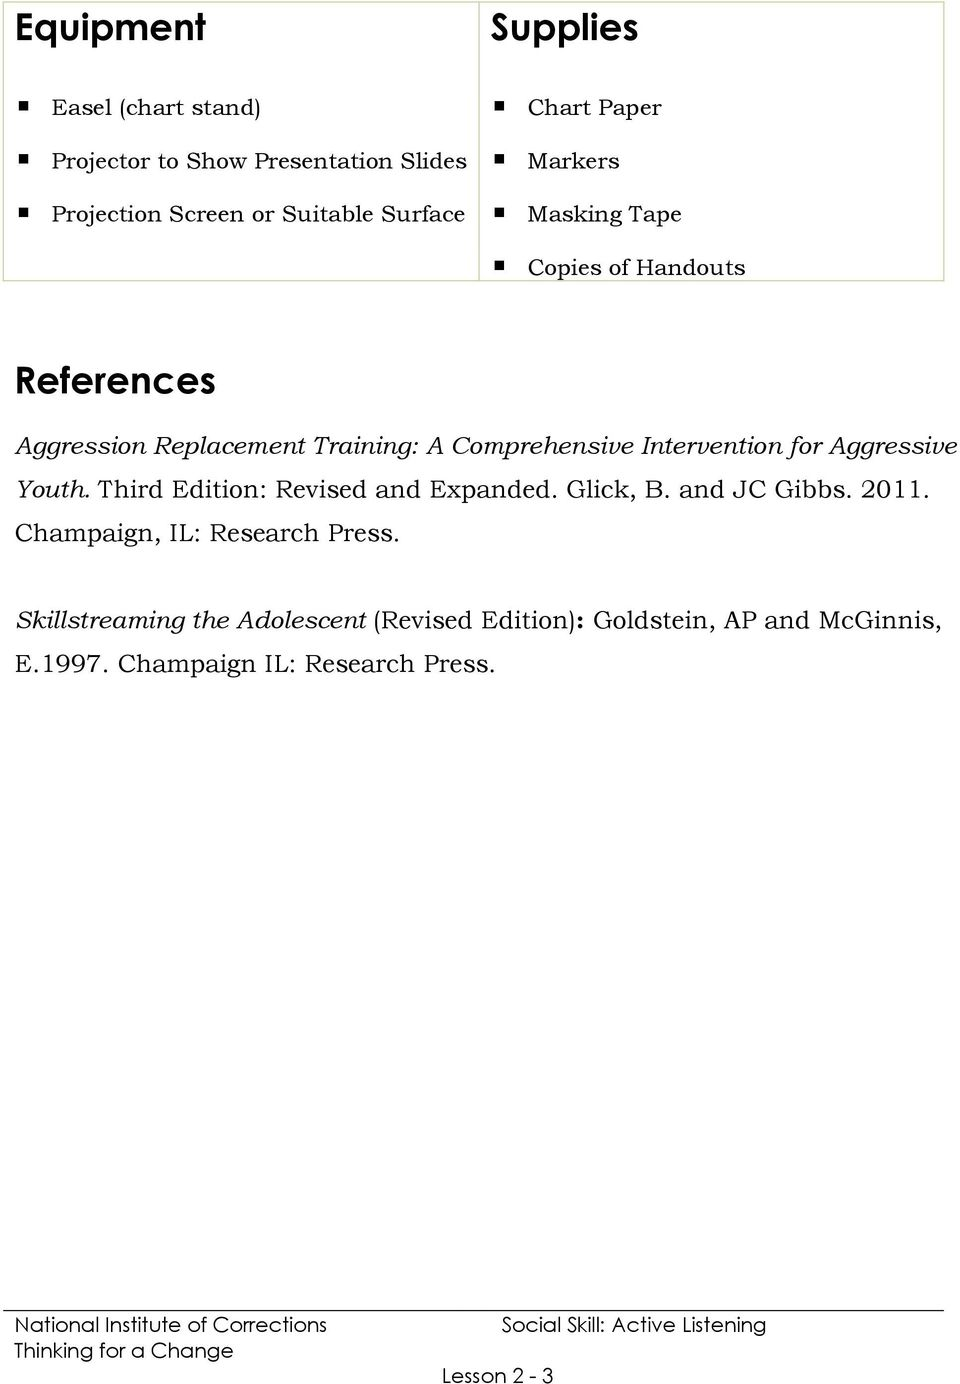 for Aggressive Youth. Third Edition: Revised and Expanded. Glick, B. and JC Gibbs. 2011. Champaign, IL: Research Press.